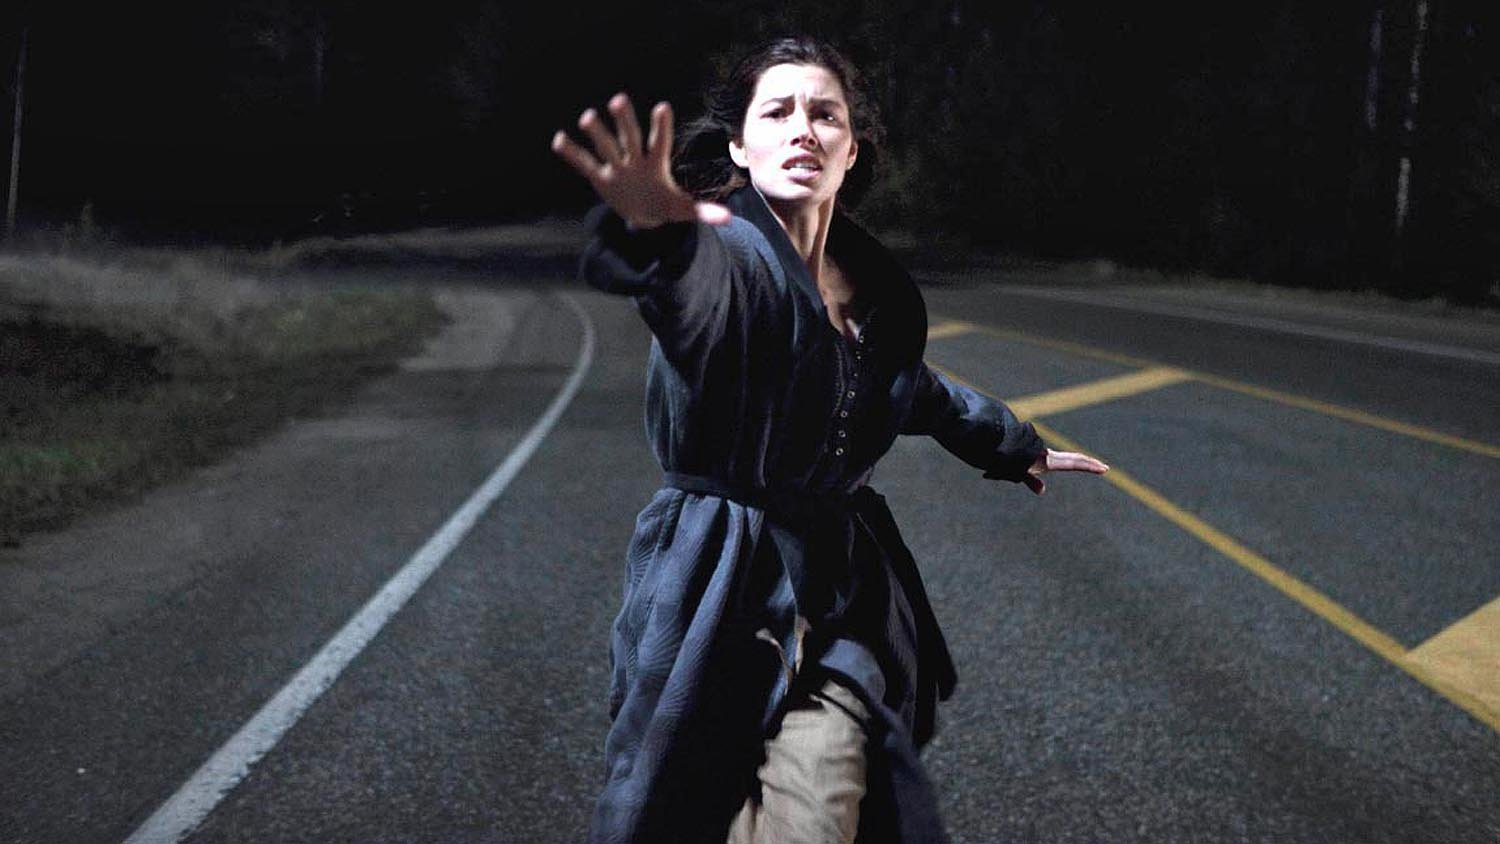 Jessica Biel runs in pursuit as The Tall Man's truck abducts her child in The Tall Man (2012)